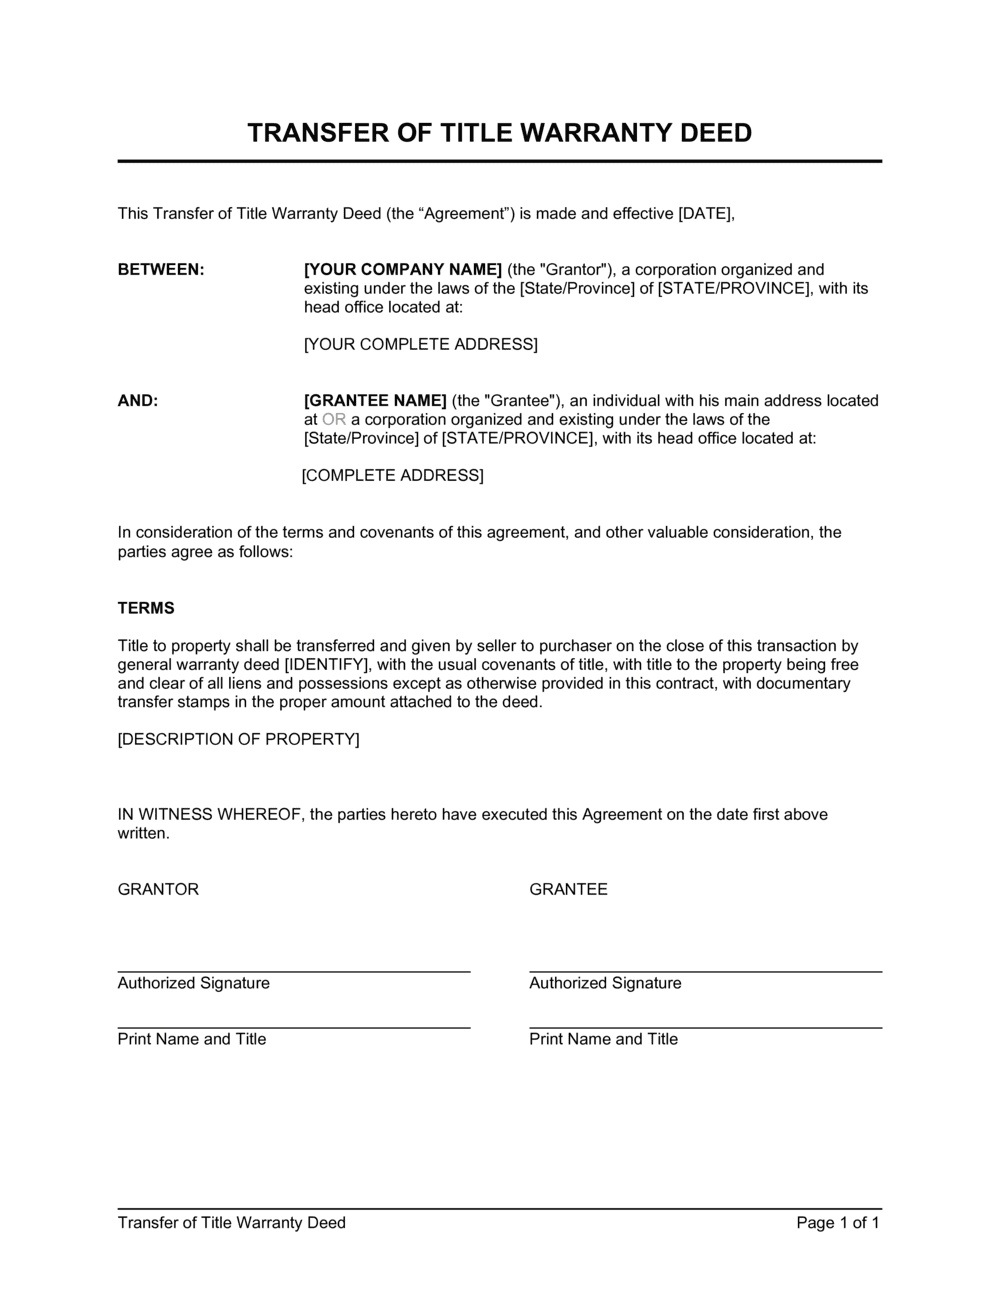 Business-in-a-Box's Transfer of Title Warranty Deed Template